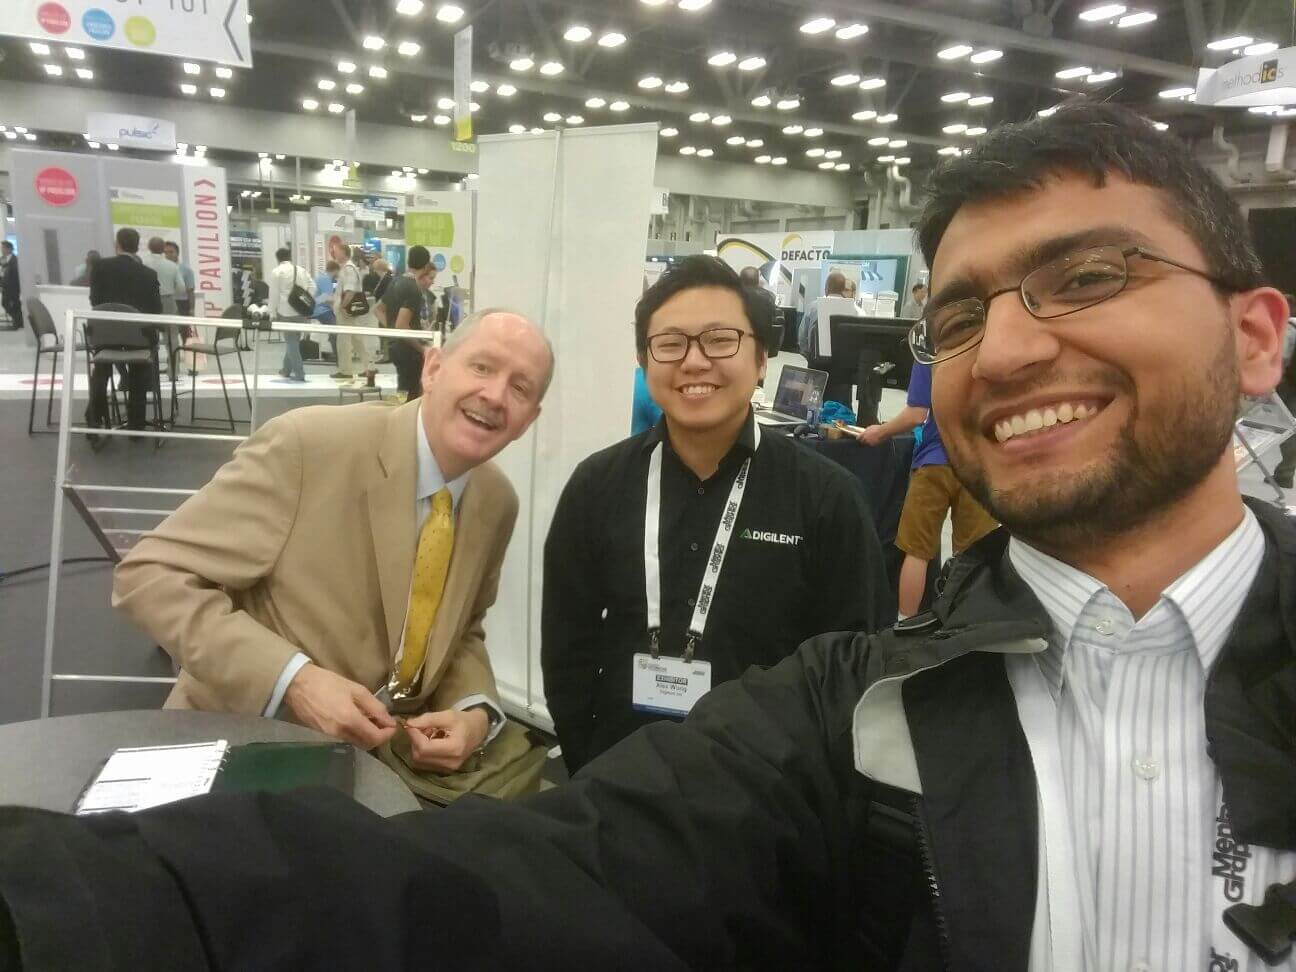 Robert Owen with Alex Wong of Digilent and Zubair Kakakhel of Imagination at the Design Automation Conference - DAC - Austin, Tx, USA. June 2016